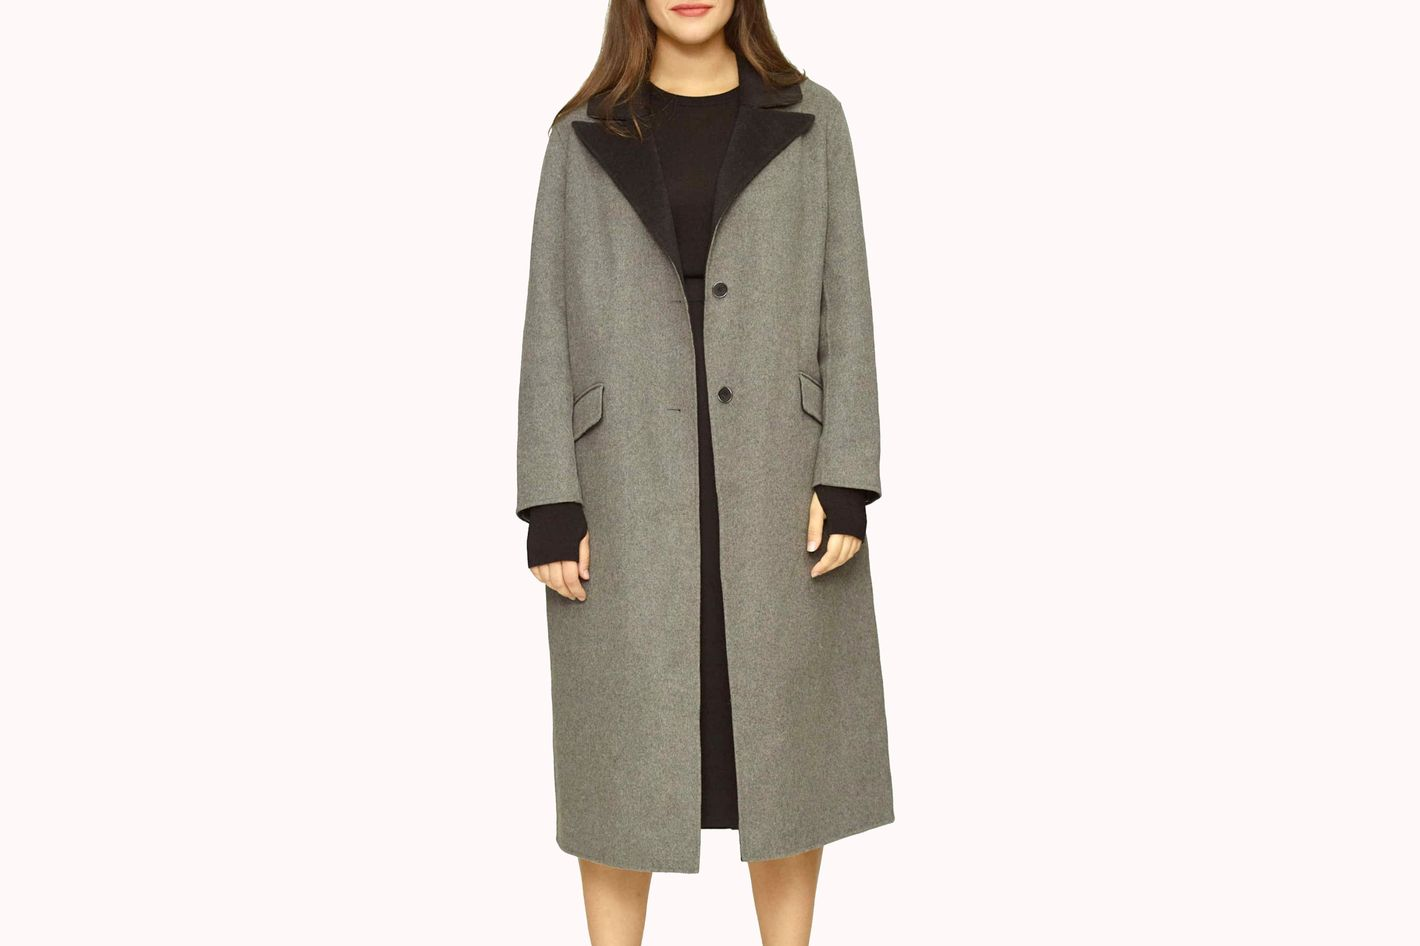 Universal Standard Contrast Wide Lapel Wool Blend Coat